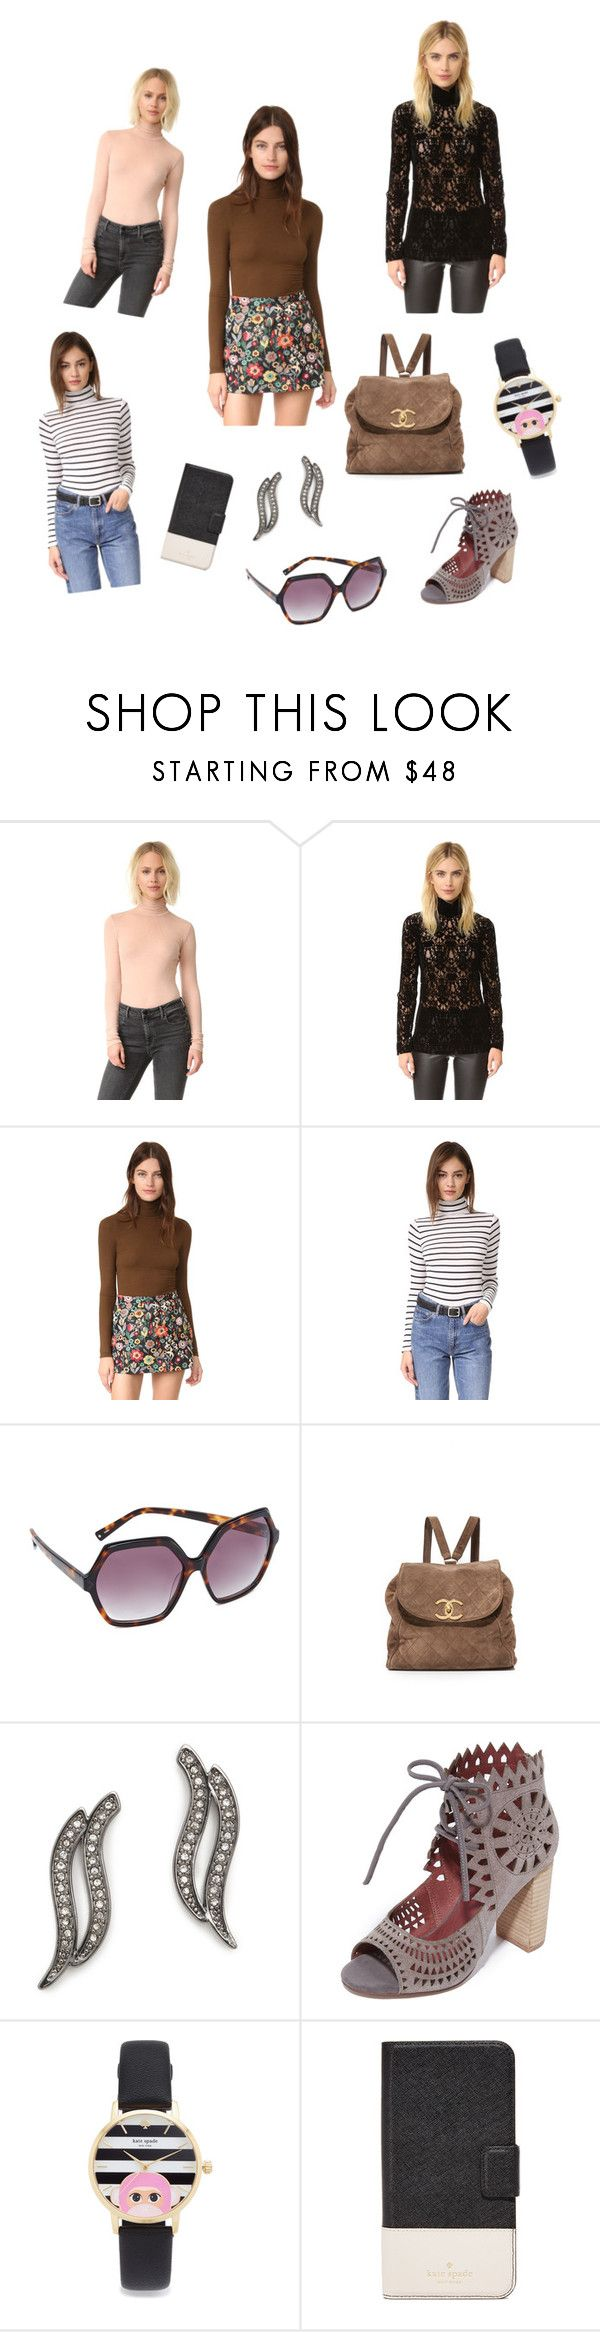 """""""Turtle Neck..**"""" by yagna ❤ liked on Polyvore featuring T By Alexander Wang, DKNY, Three Dots, Club Monaco, Kendall + Kylie, Rebecca Minkoff, Jeffrey Campbell, Kate Spade and vintage"""